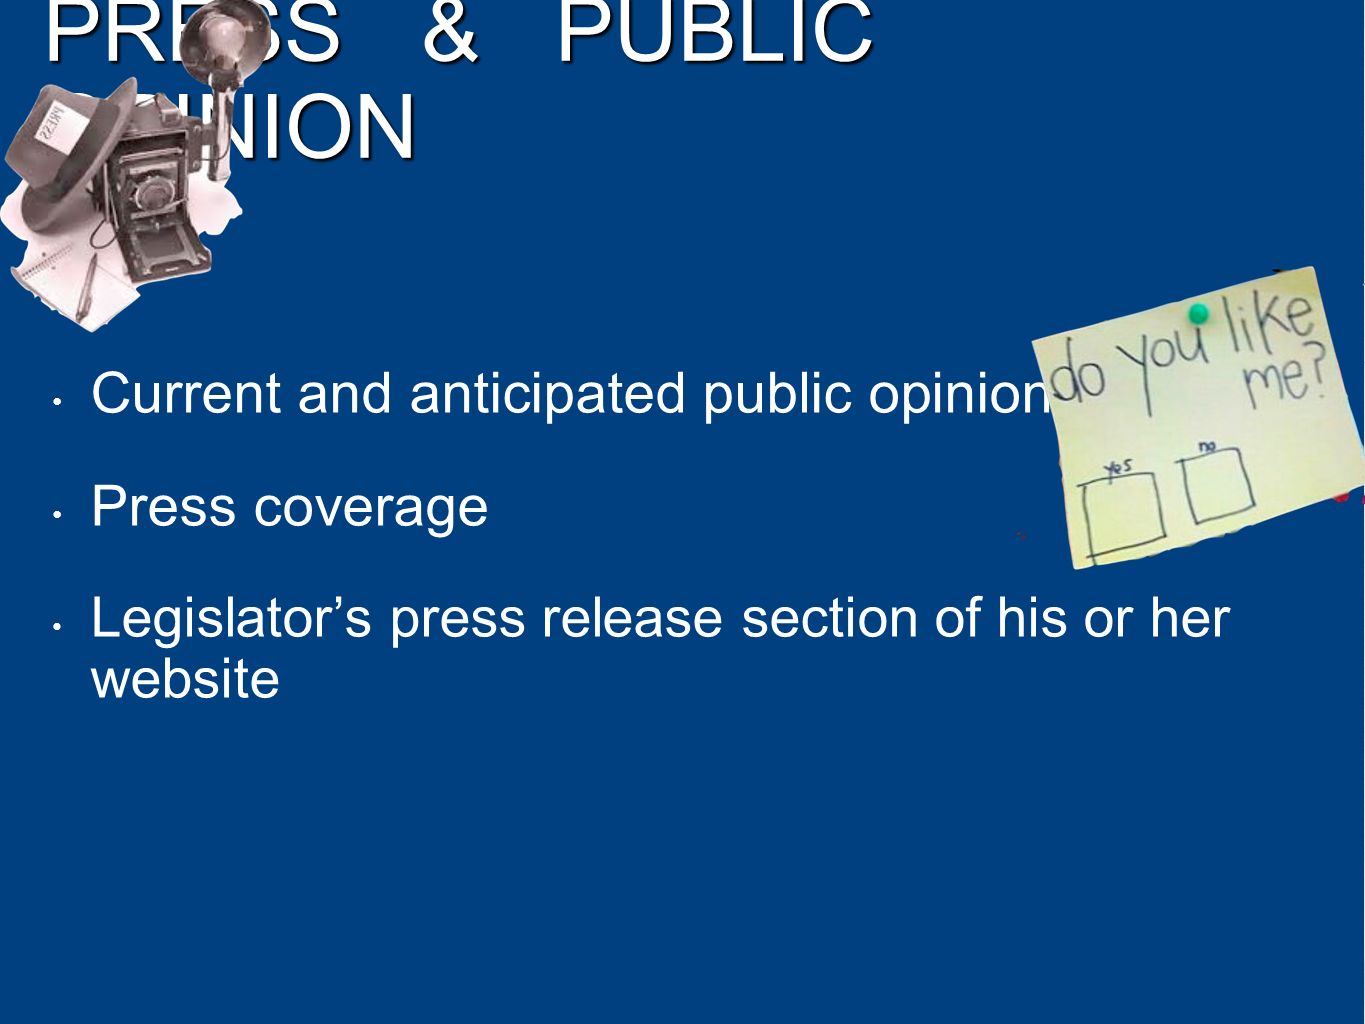 PRESS & PUBLIC OPINION Current and anticipated public opinion